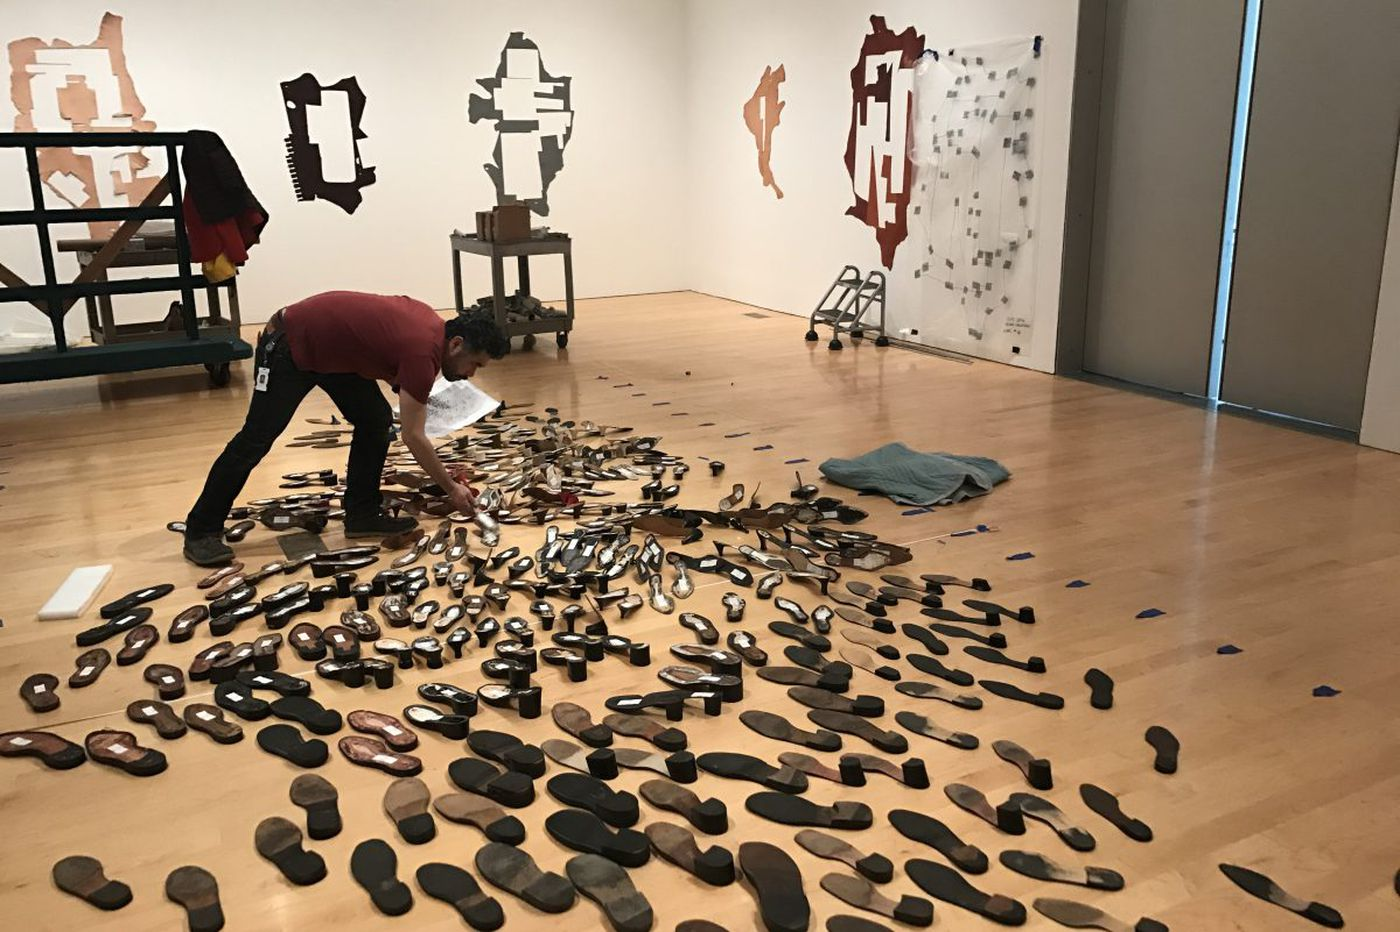 How do 400 broken shoes become art? Inside Philly museum's newest installation